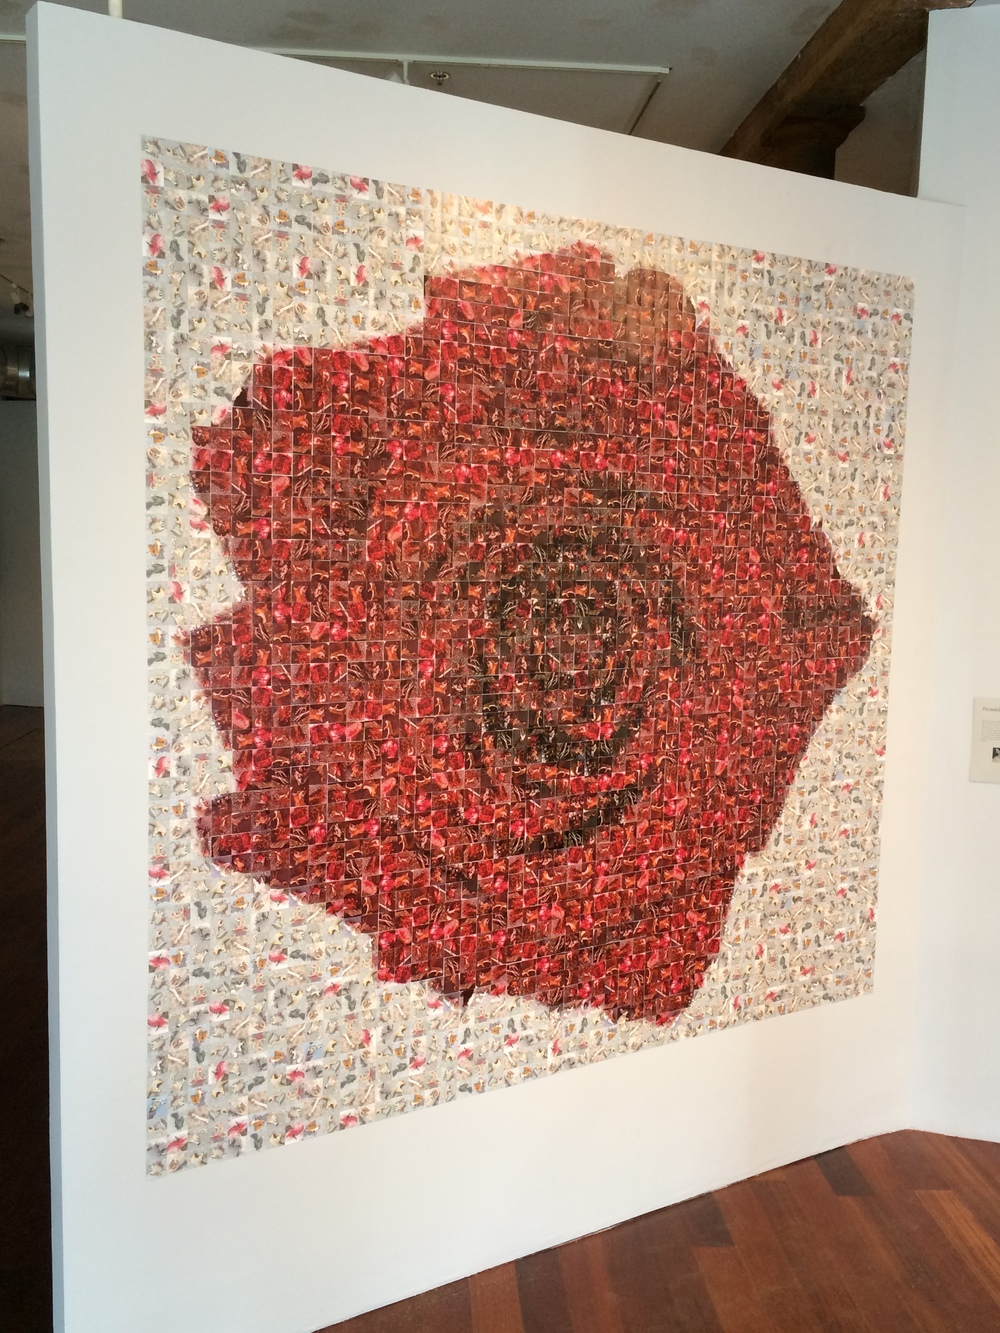 ROSEKILL, 8' x 7.5', 2,350 photos of roadkill, 2015